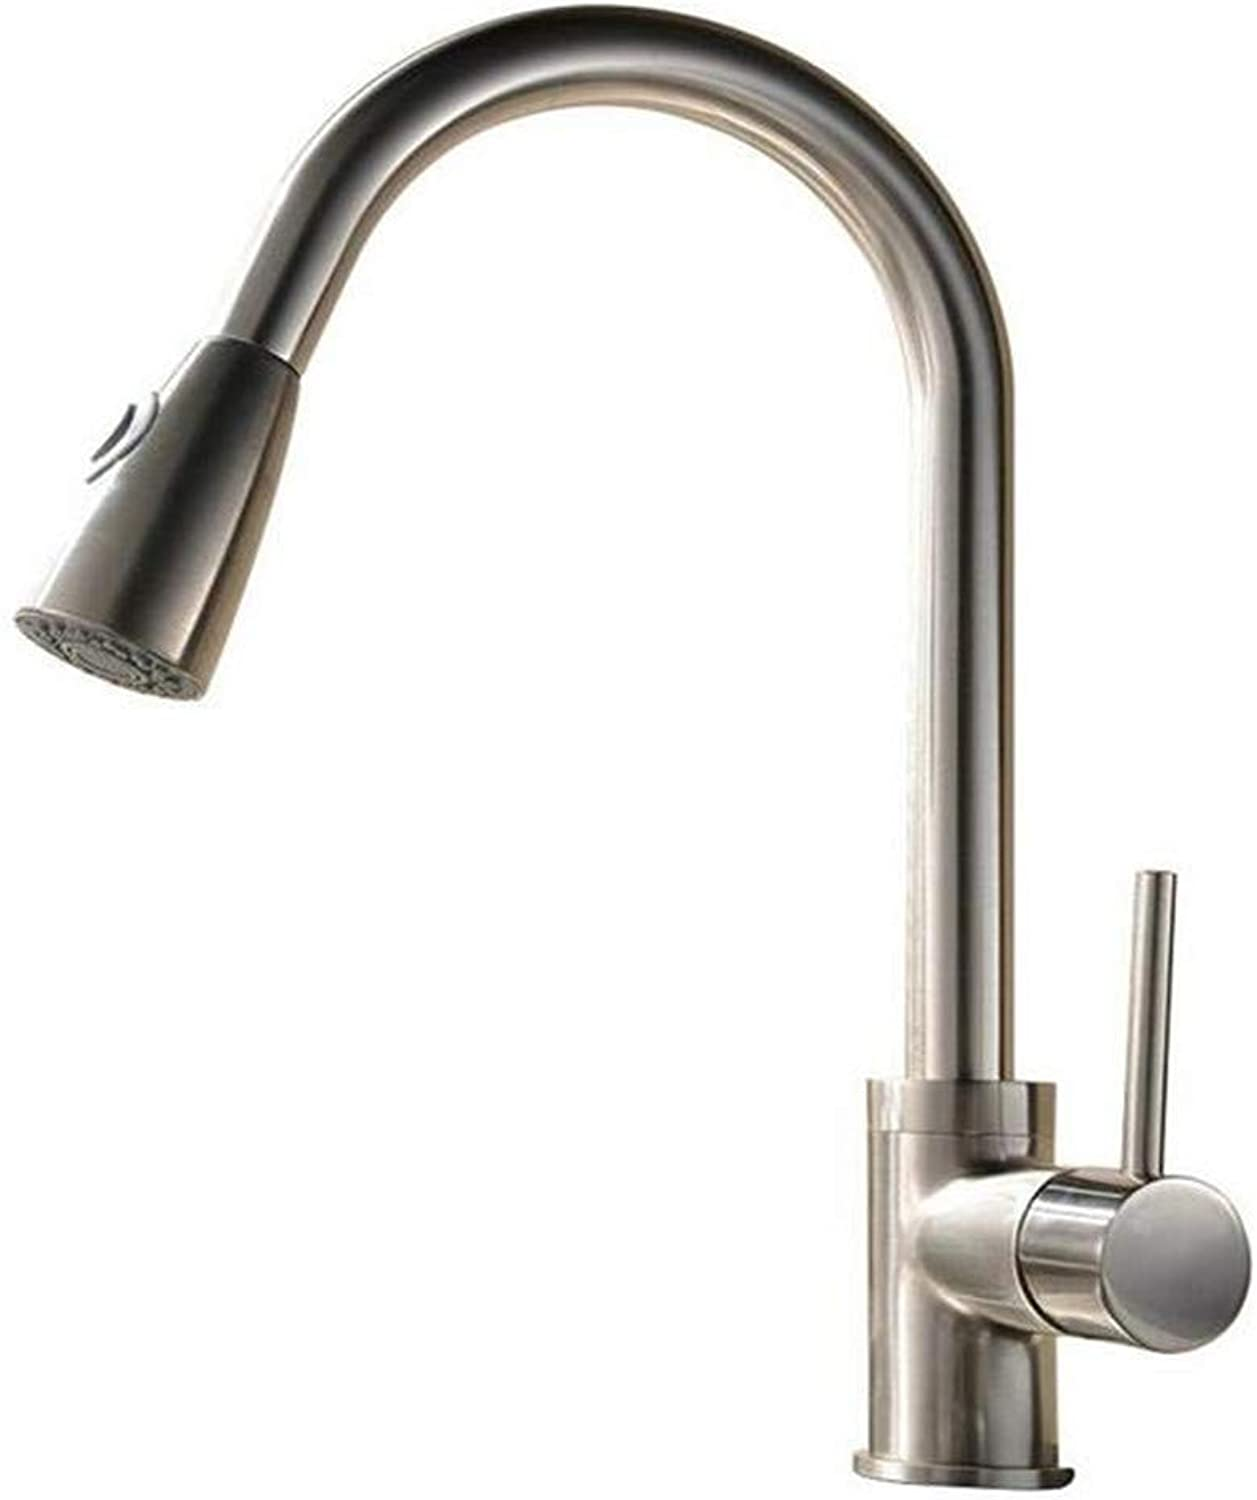 Faucet Kitchen Bathroom Luxury Faucet Modern Sink 360 Degree redation Tap Lead Free All Copper Pulling Type Single Lever Kitchen Cold Hot Water